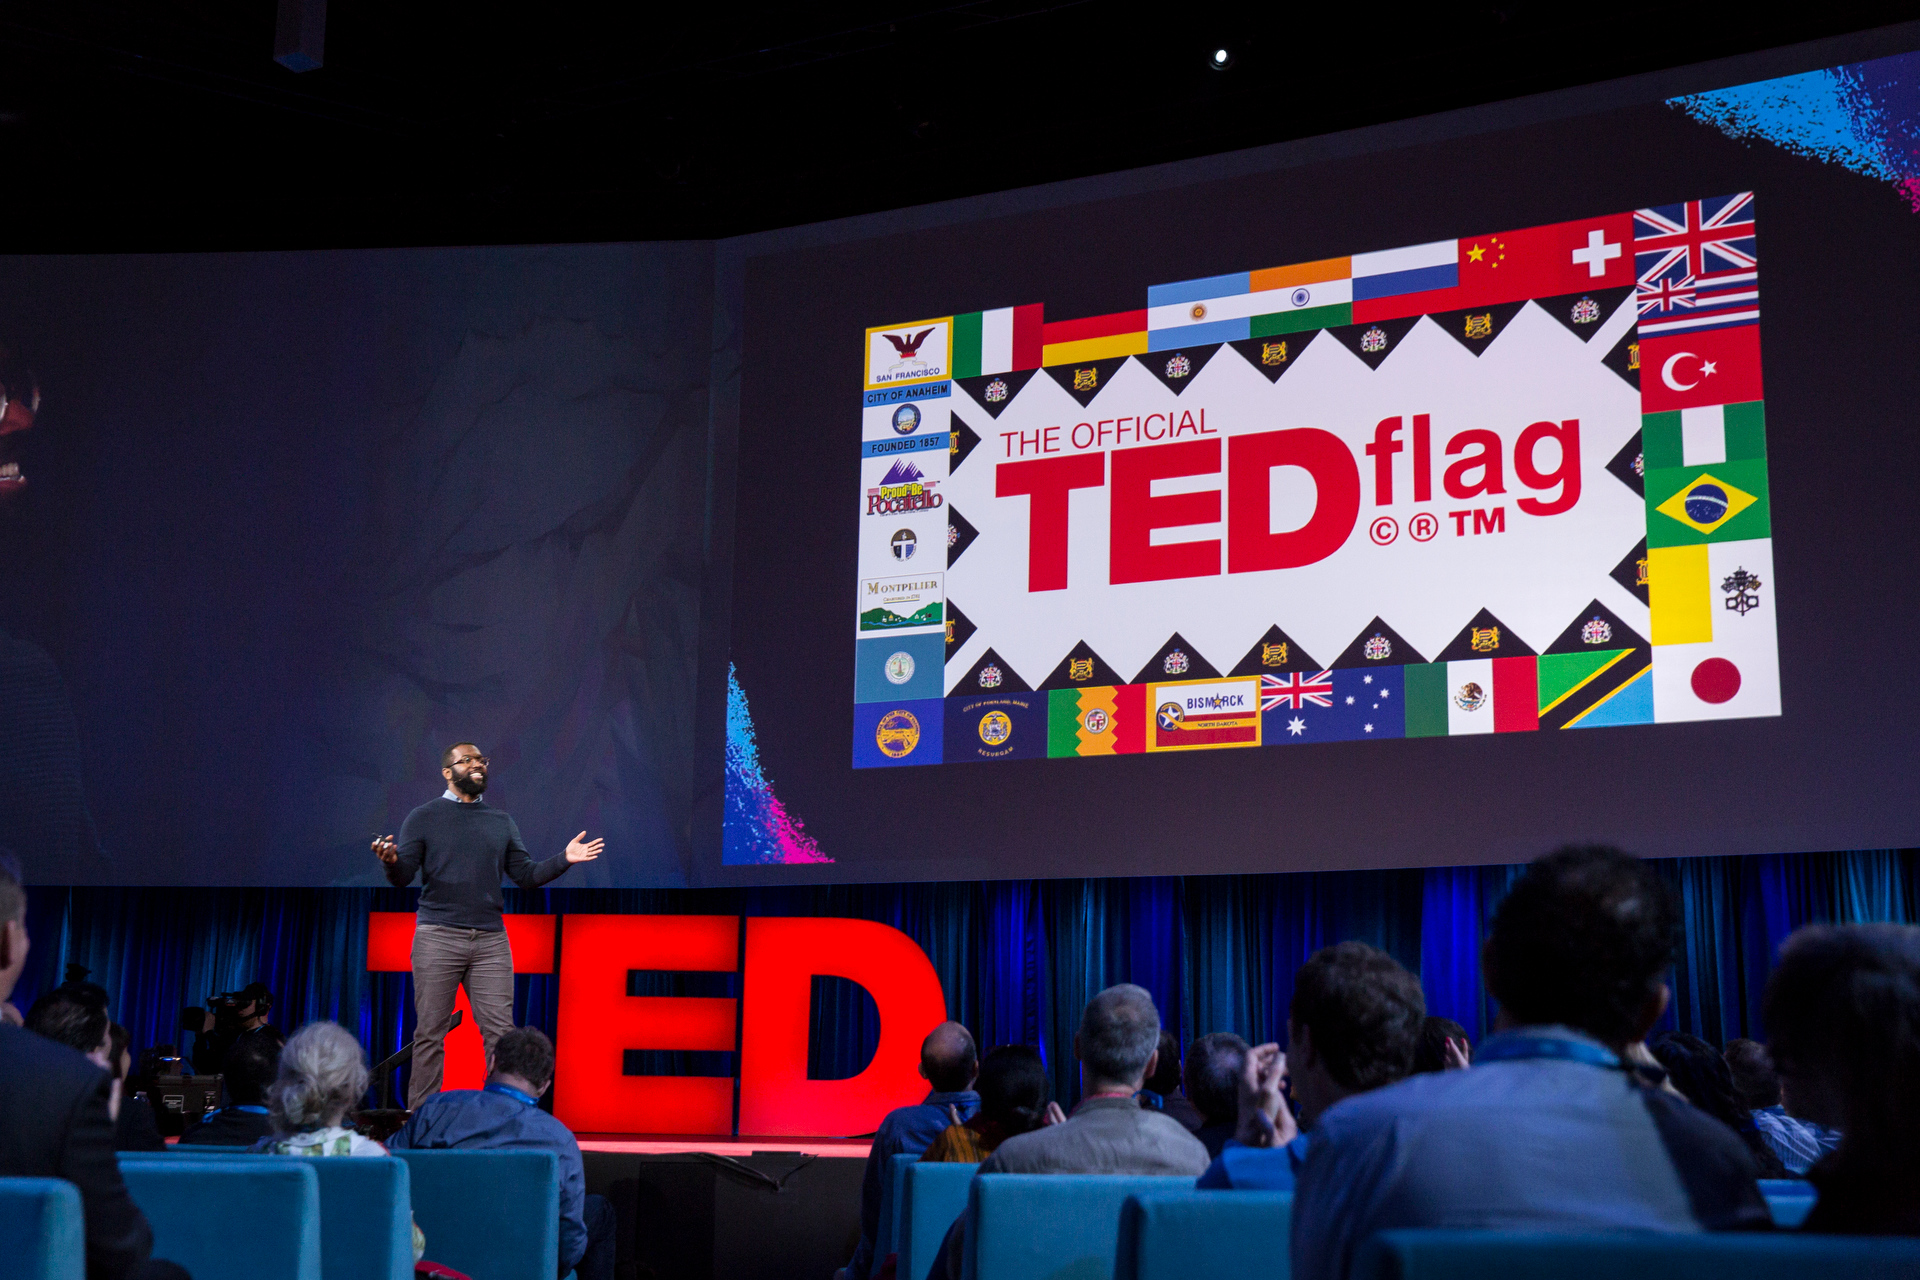 """In his wrap-up of TED2015, Baratunde Thurston unveiled the """"TED Flag."""" It breaks every single rule for flag design laid out in Roman Mars' TED Talk earlier in the week. Photo: Bret Hartman/TED"""